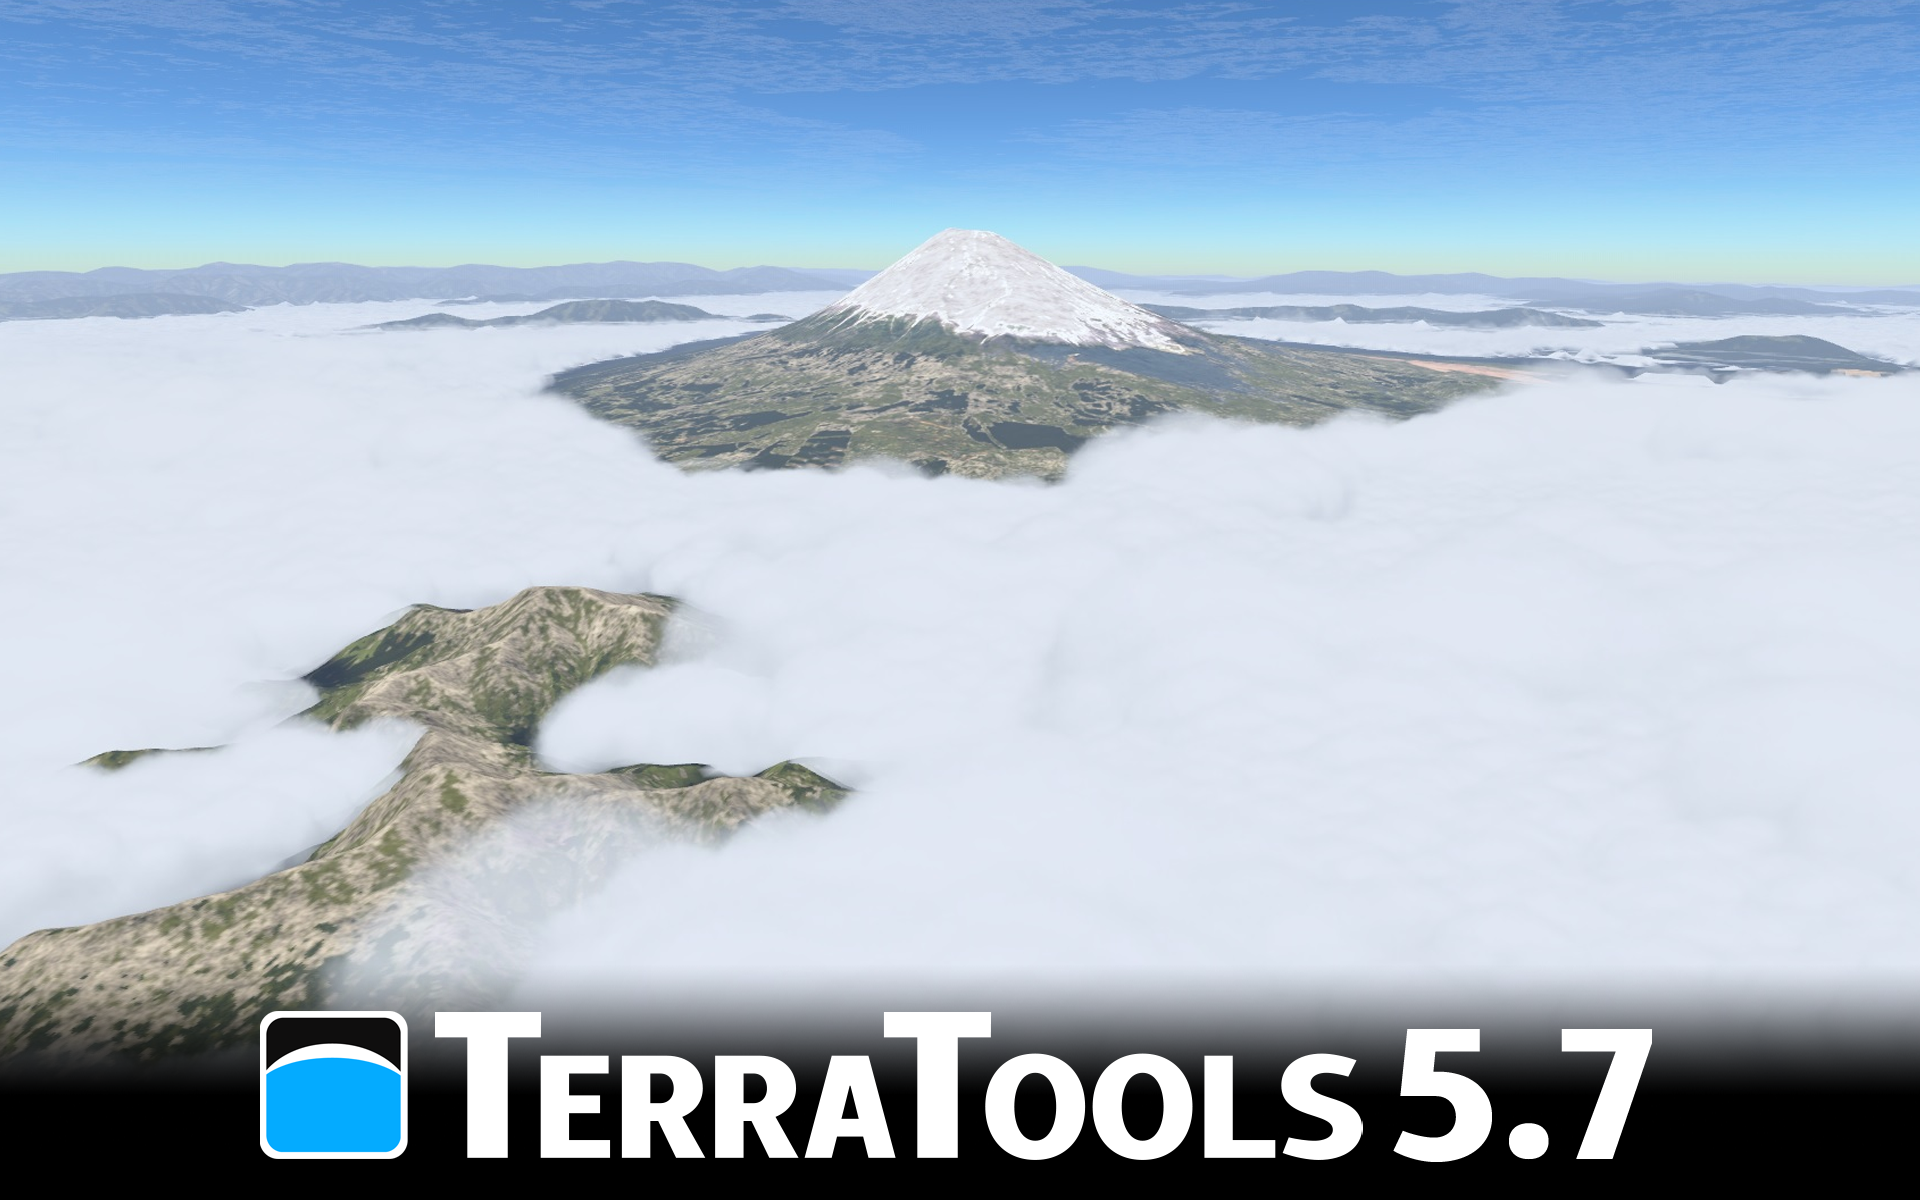 Terrain generated in TerraTools as viewed in VBS Blue IG